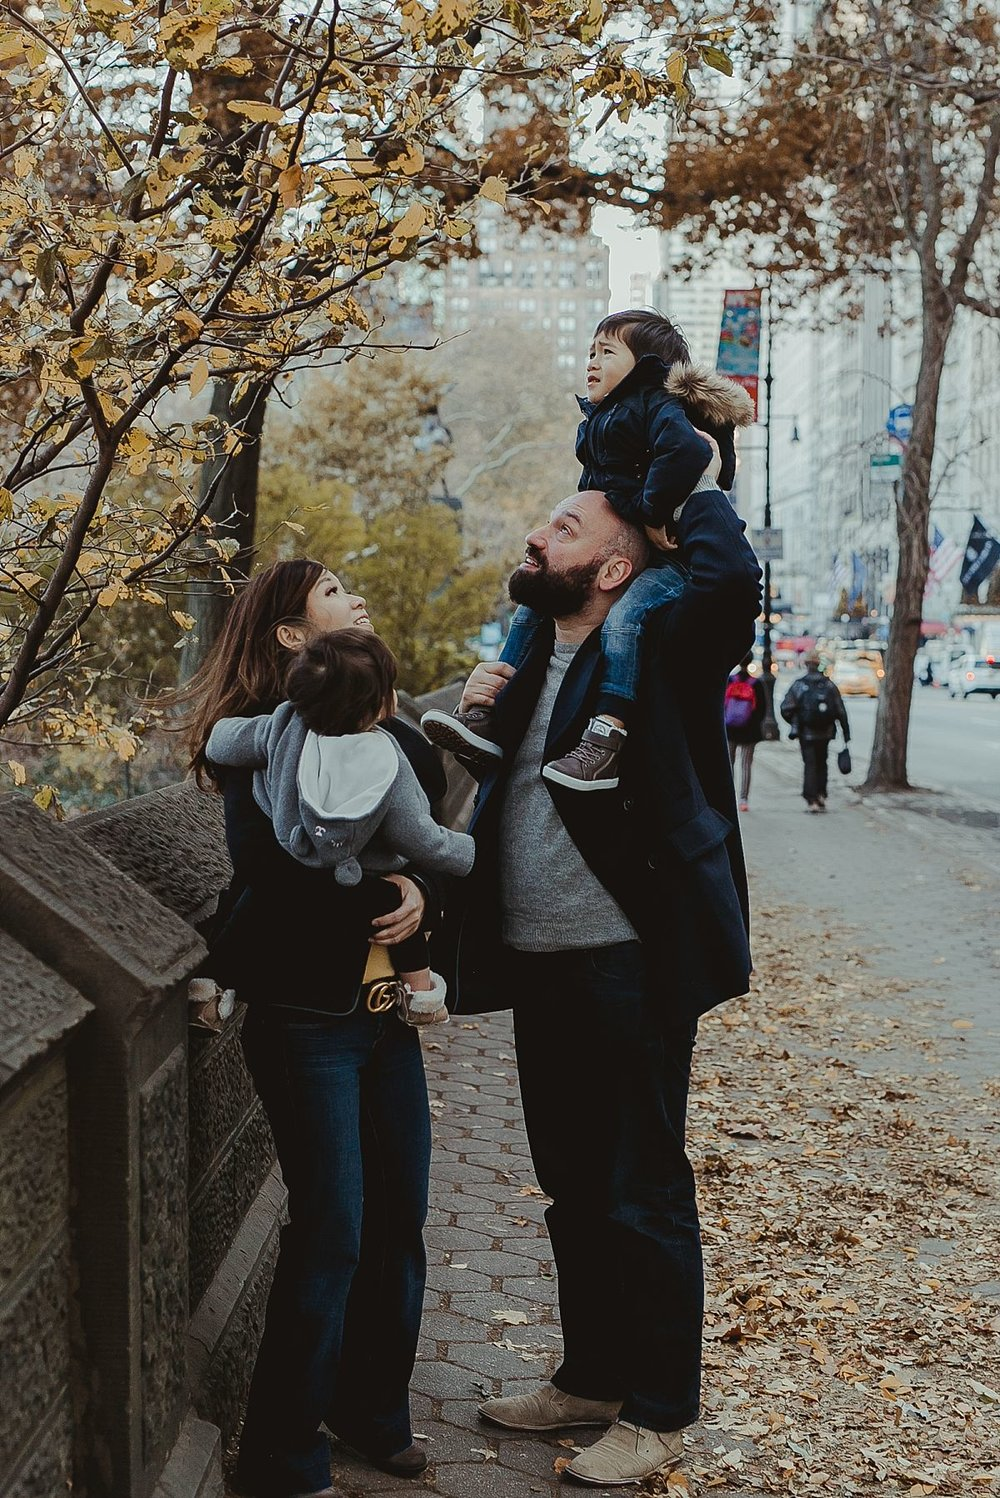 family playing with leaves of tree at the bottom of central park on chilly winters day. photo by nyc family photographer krystil mcdowall